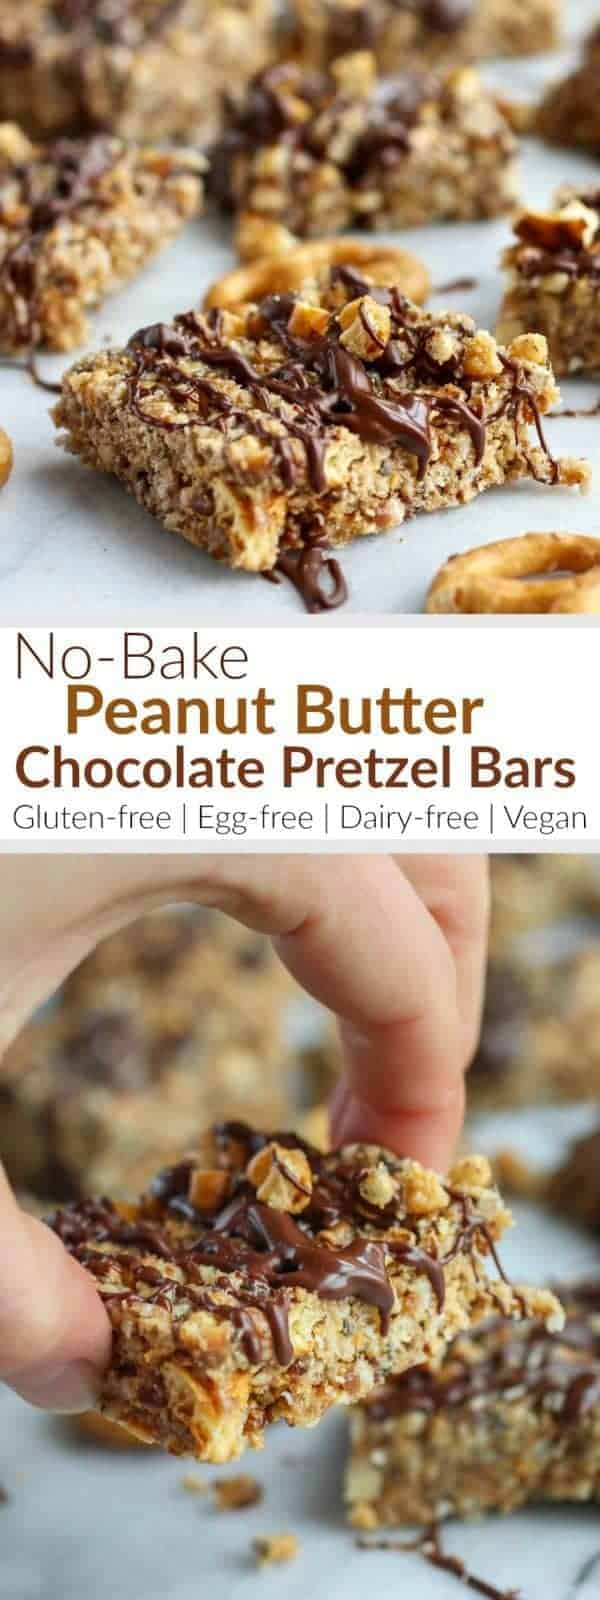 No-Bake Peanut Butter Chocolate Pretzel Bars make the perfect sweet-and-salty treat. They're gluten-free, egg-free, dairy-free & vegan-friendly and only 5 grams of sugar per bar! | therealfoodrds.com